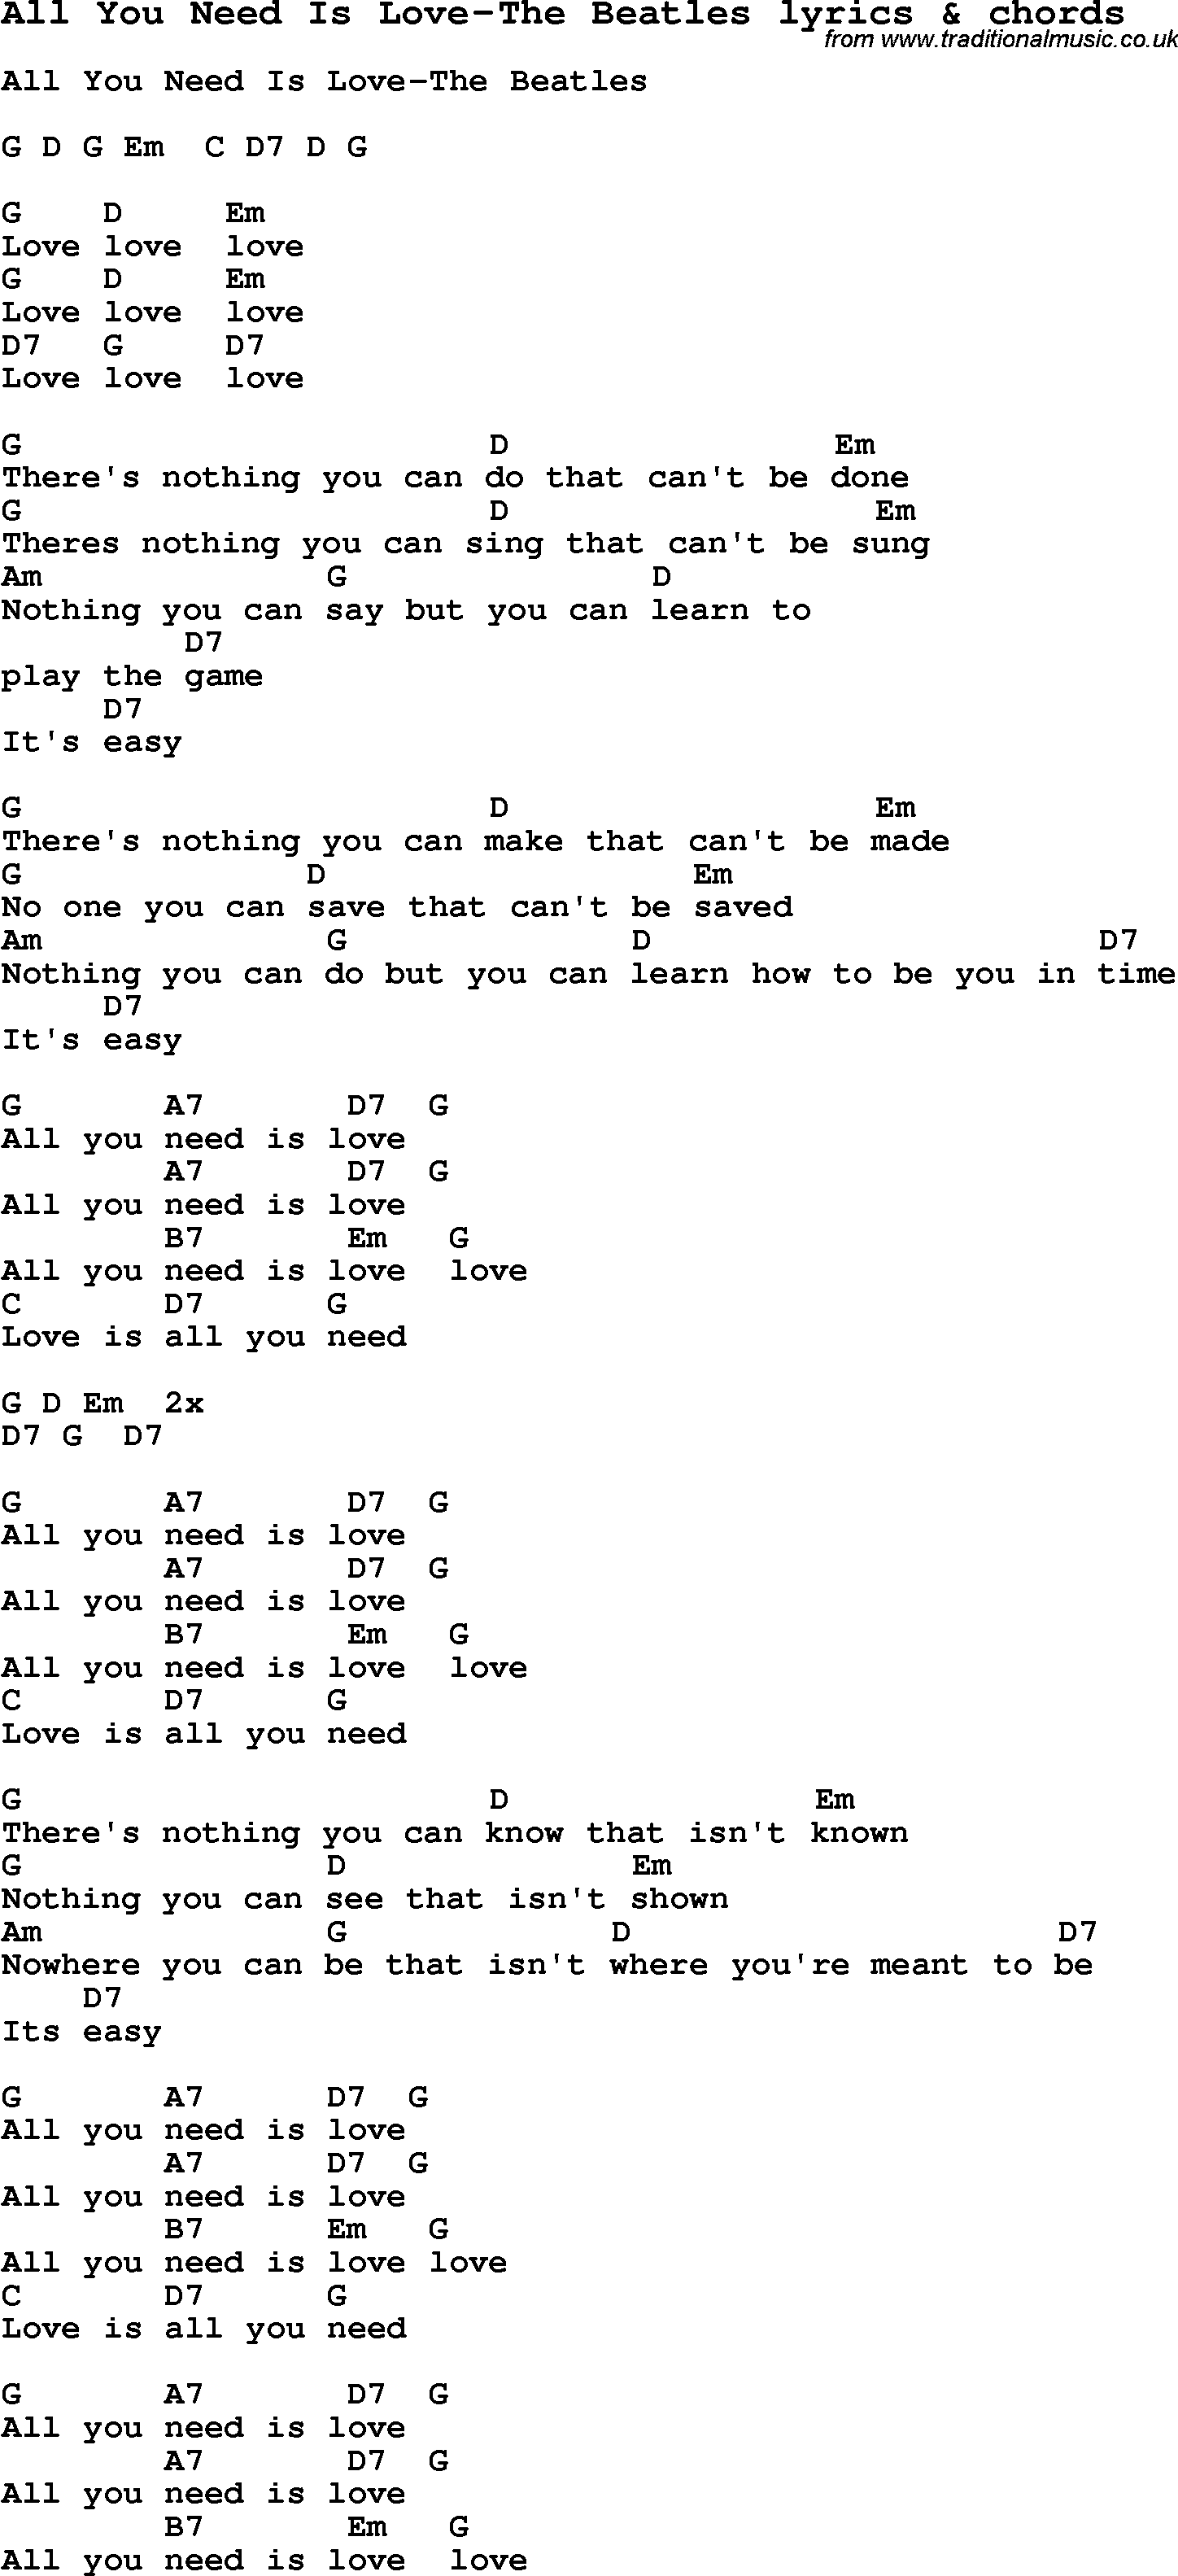 ... Banjo Tabs. Love Song Lyrics For All You Need Is LoveThe Beatles With  Chords